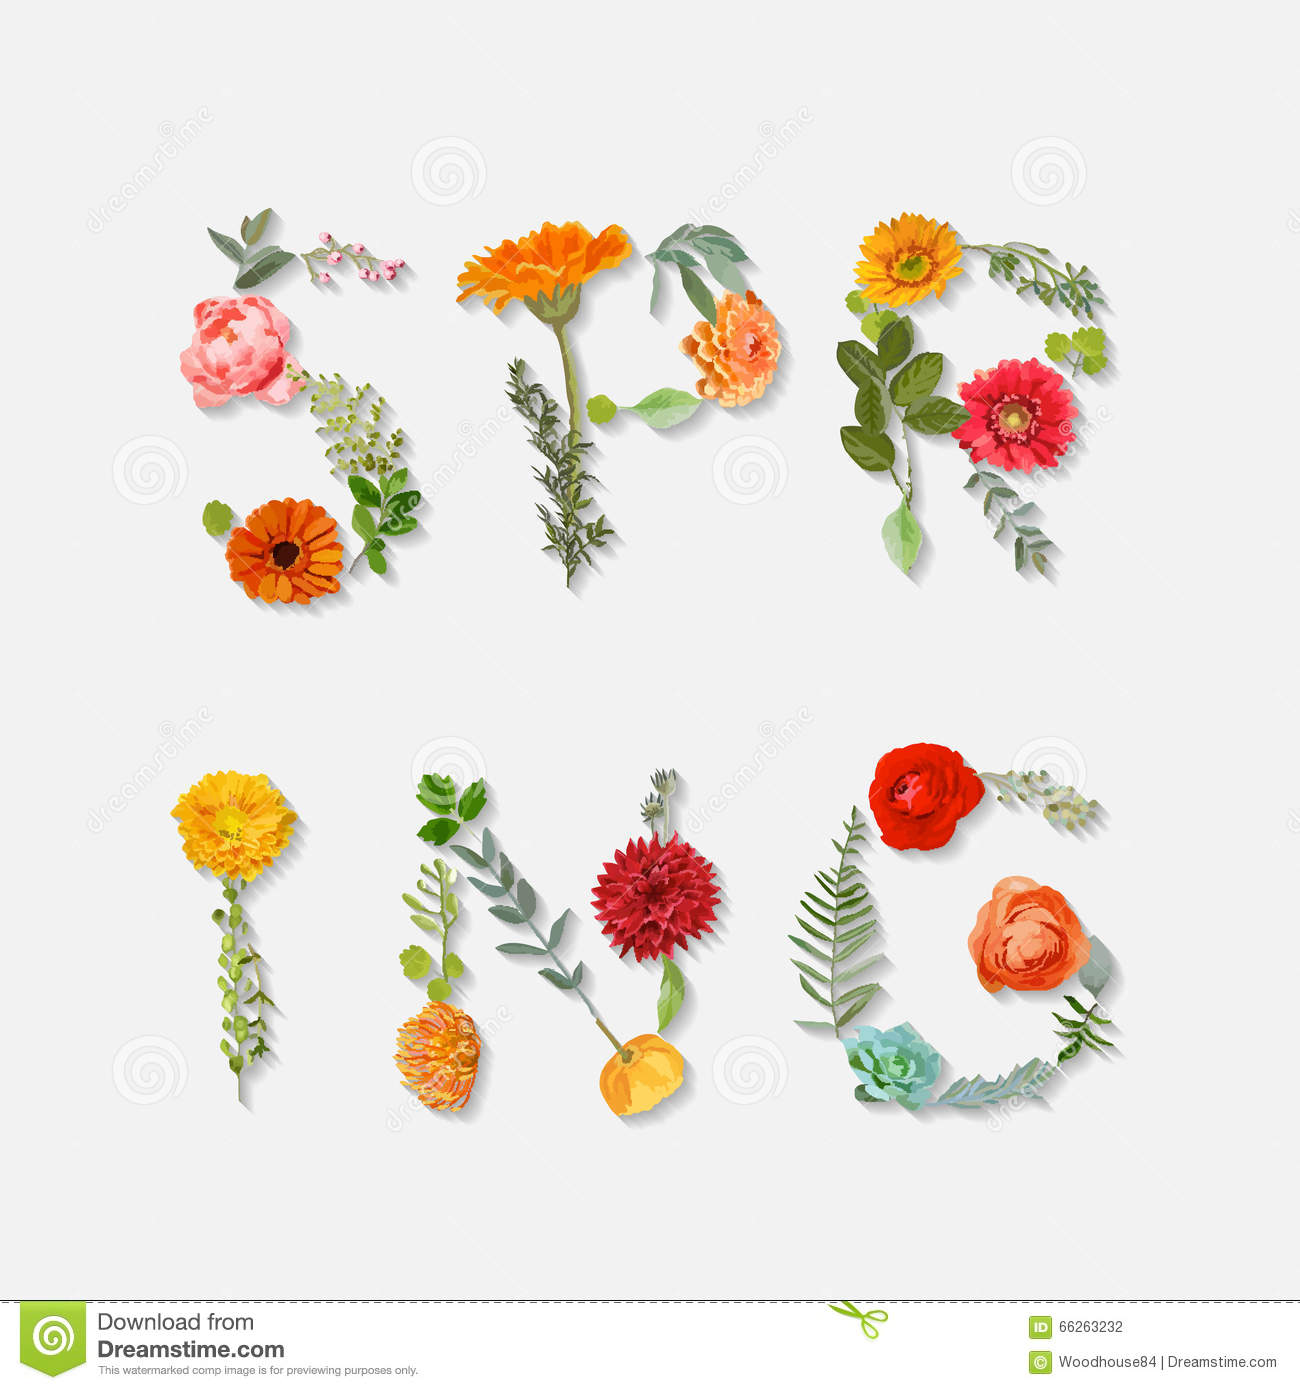 Floral Spring Graphic Design Stock Vector